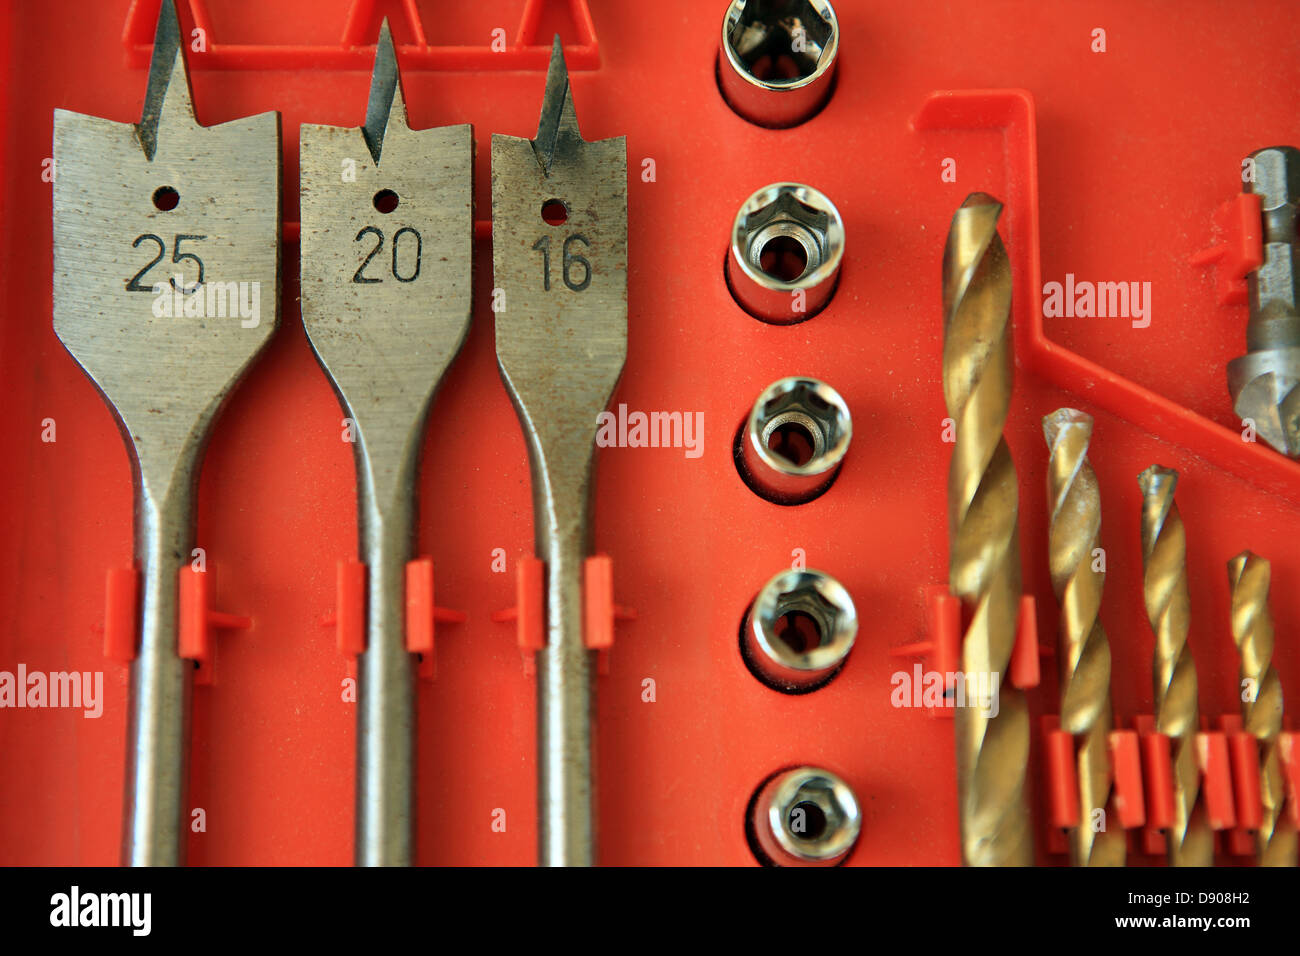 Spade and twist drill bits in a tool set - Stock Image